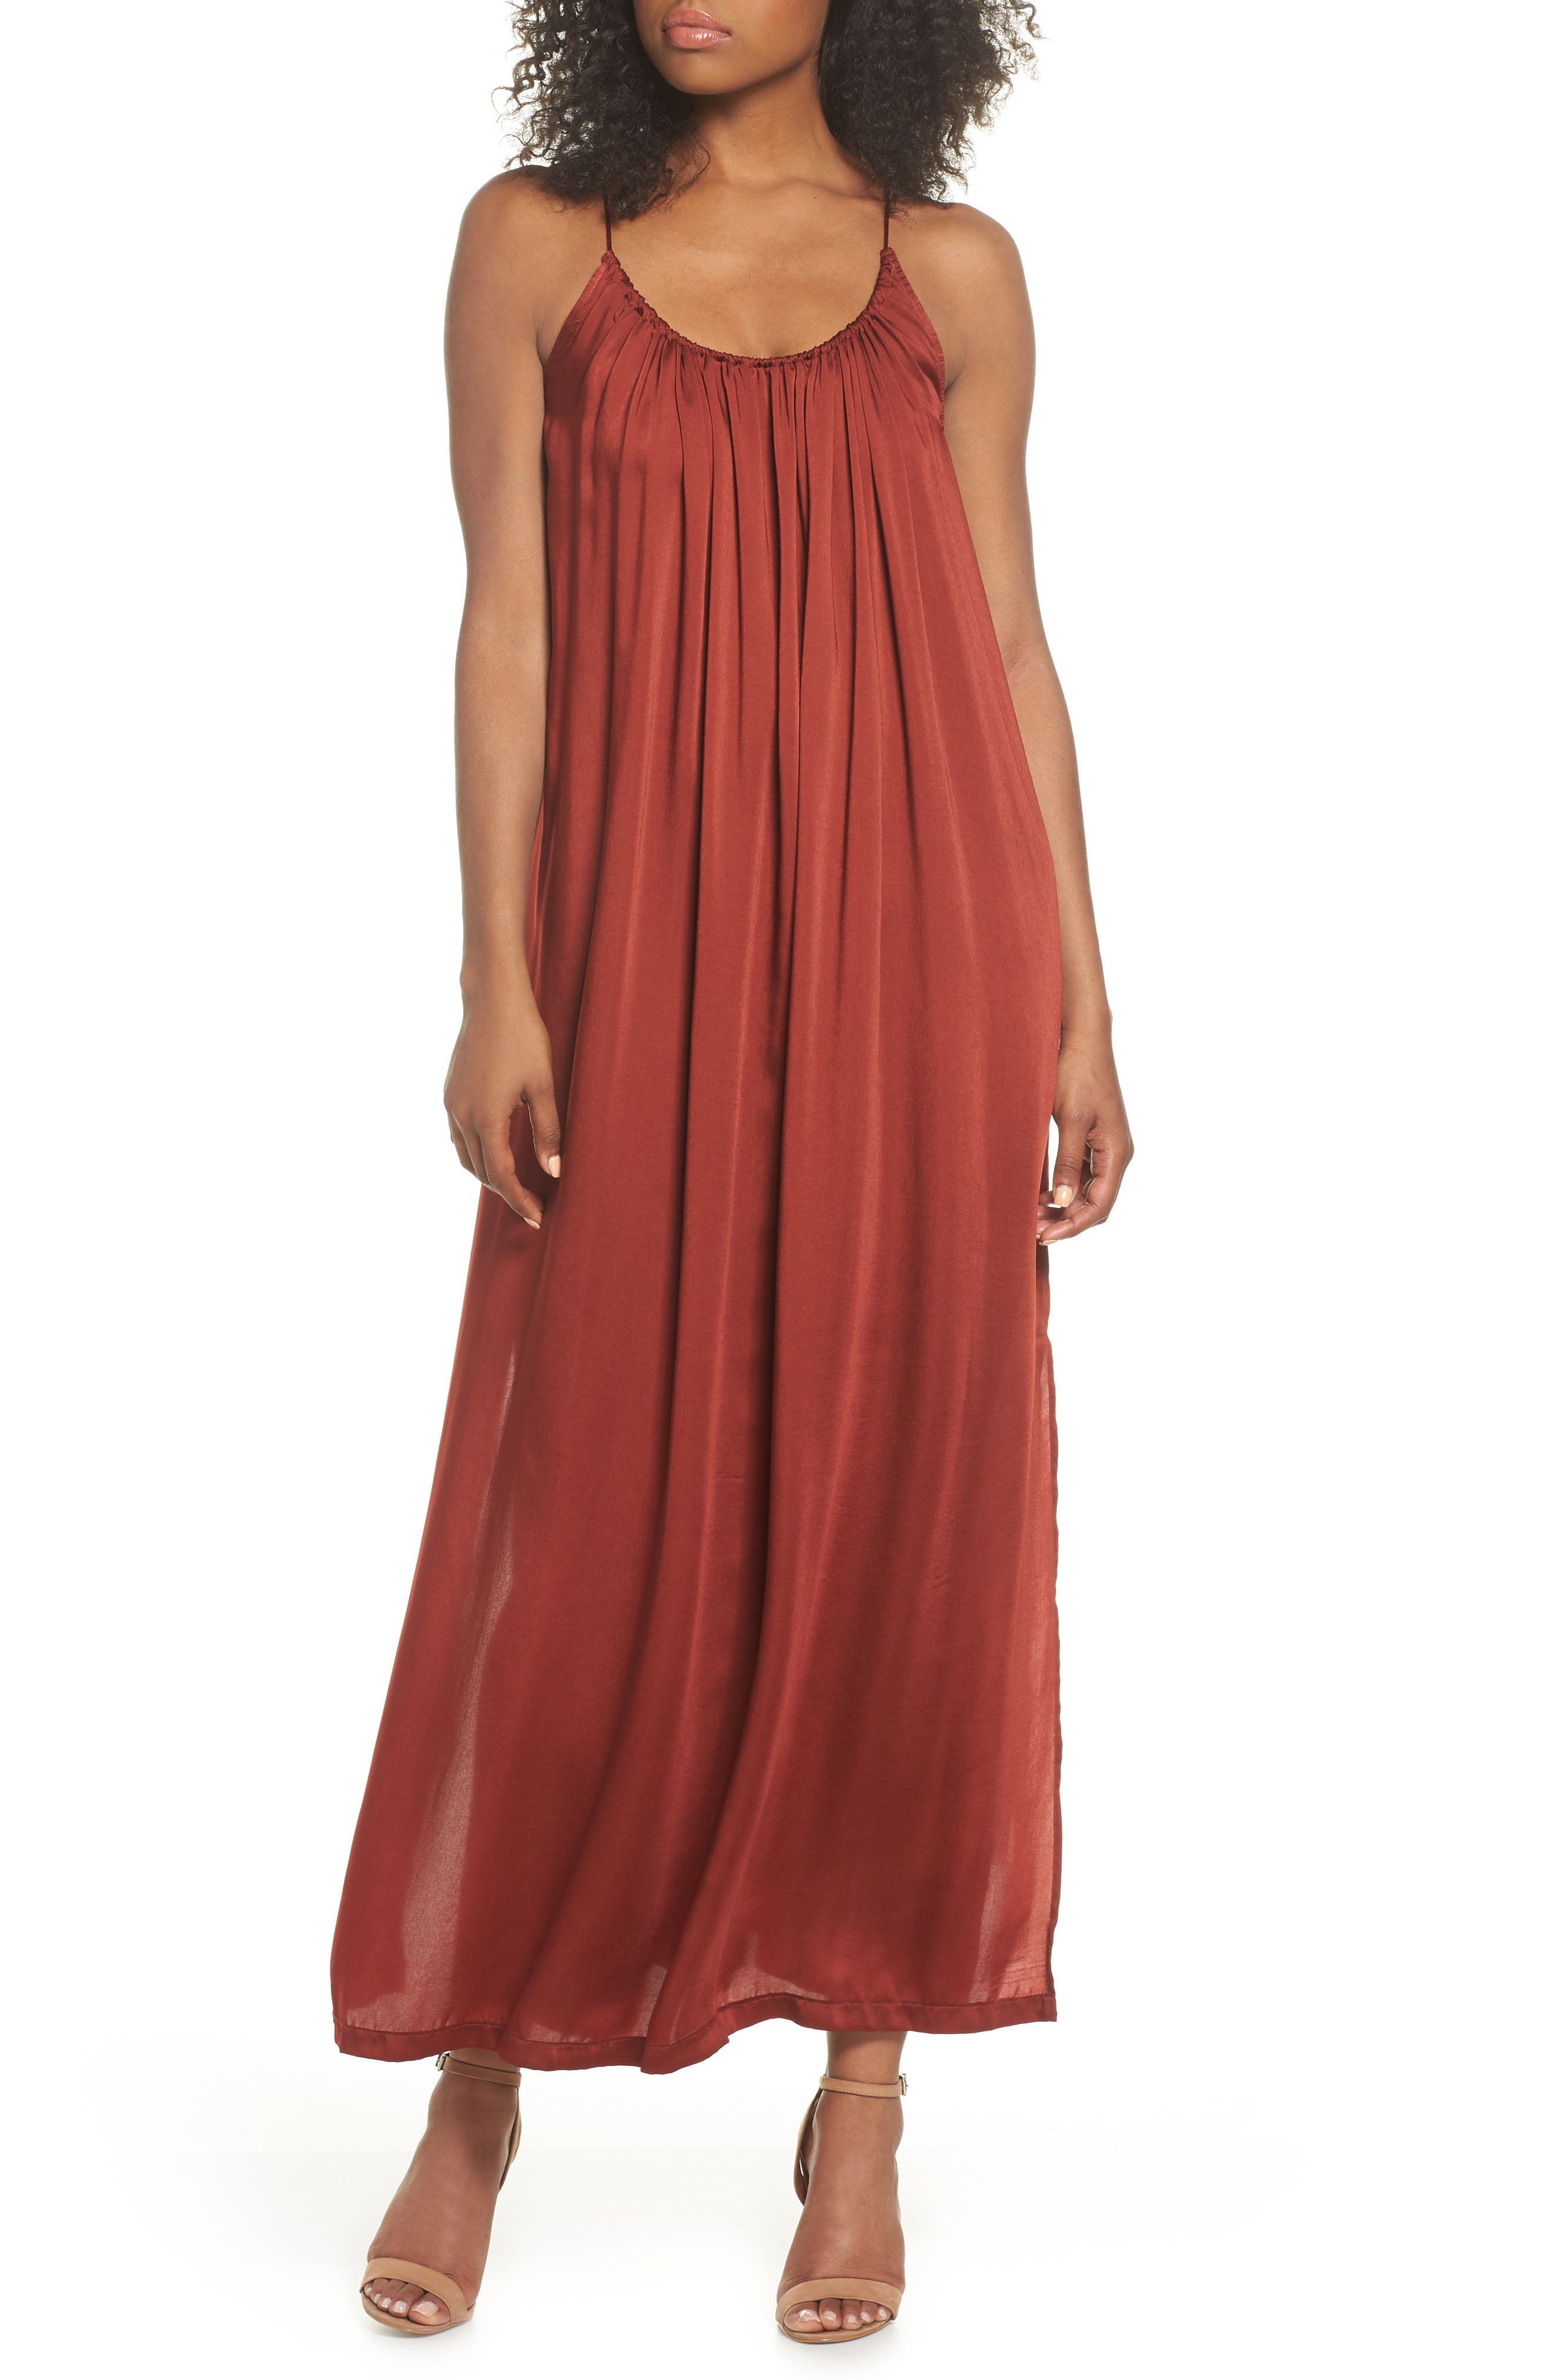 KNOT SISTERS YVONNE MAXI DRESS